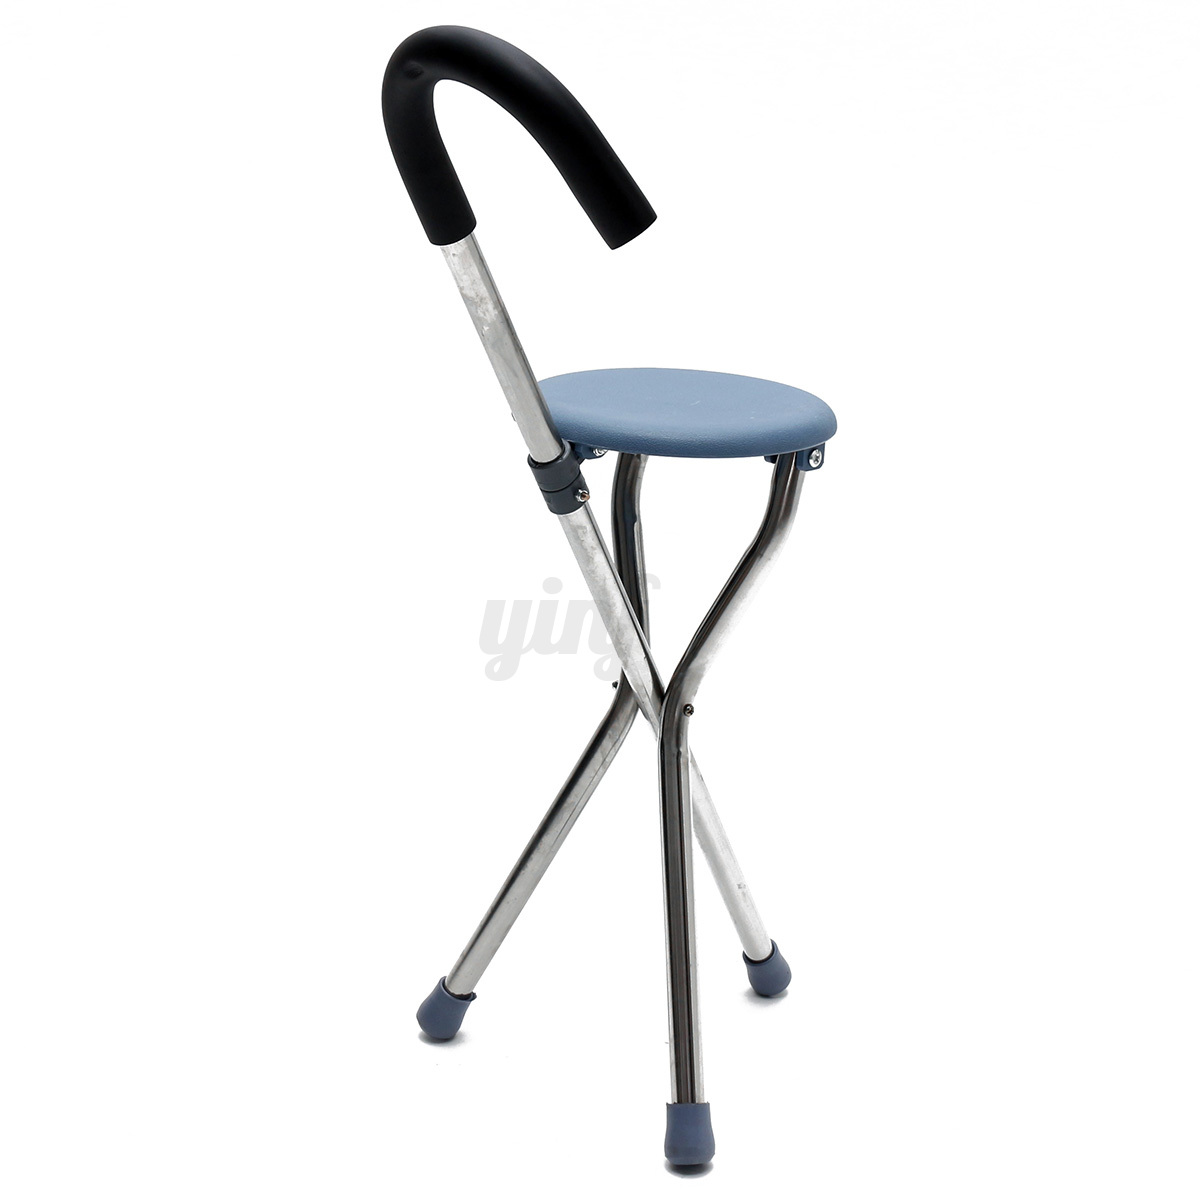 Walking Chair Lightweight Folding Tripod Cane Hiking Chair Portable